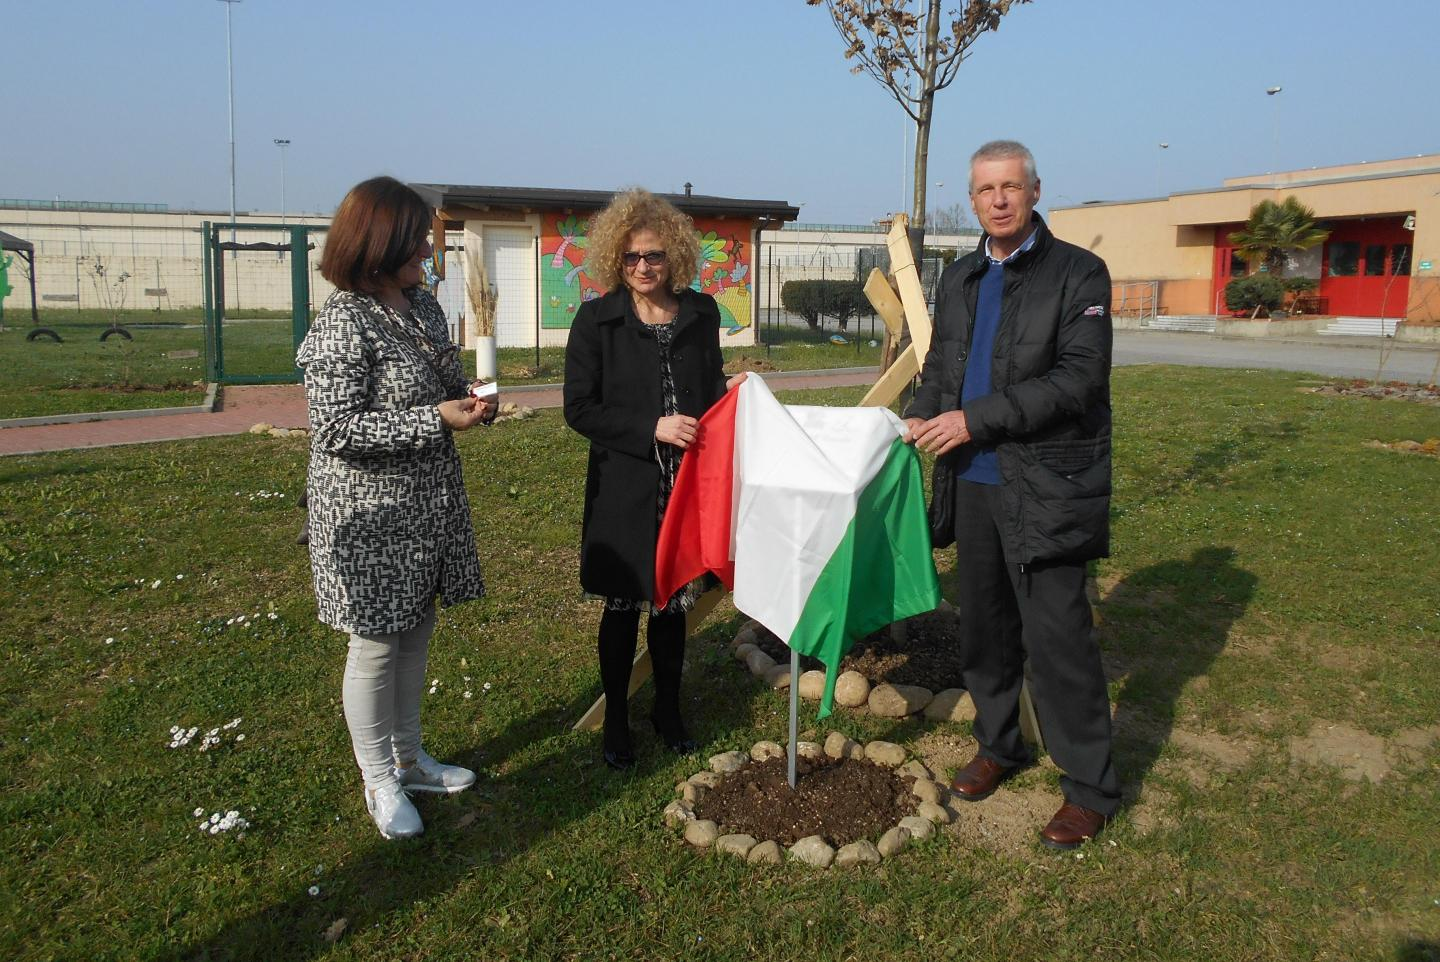 From the left: Roberta Miotto, chairman of the Association Senza Confini, Maria Pitaniello, warden of the Correctional Facility of Monza, and Franco Perlasca, son of Giorgio Perlasca